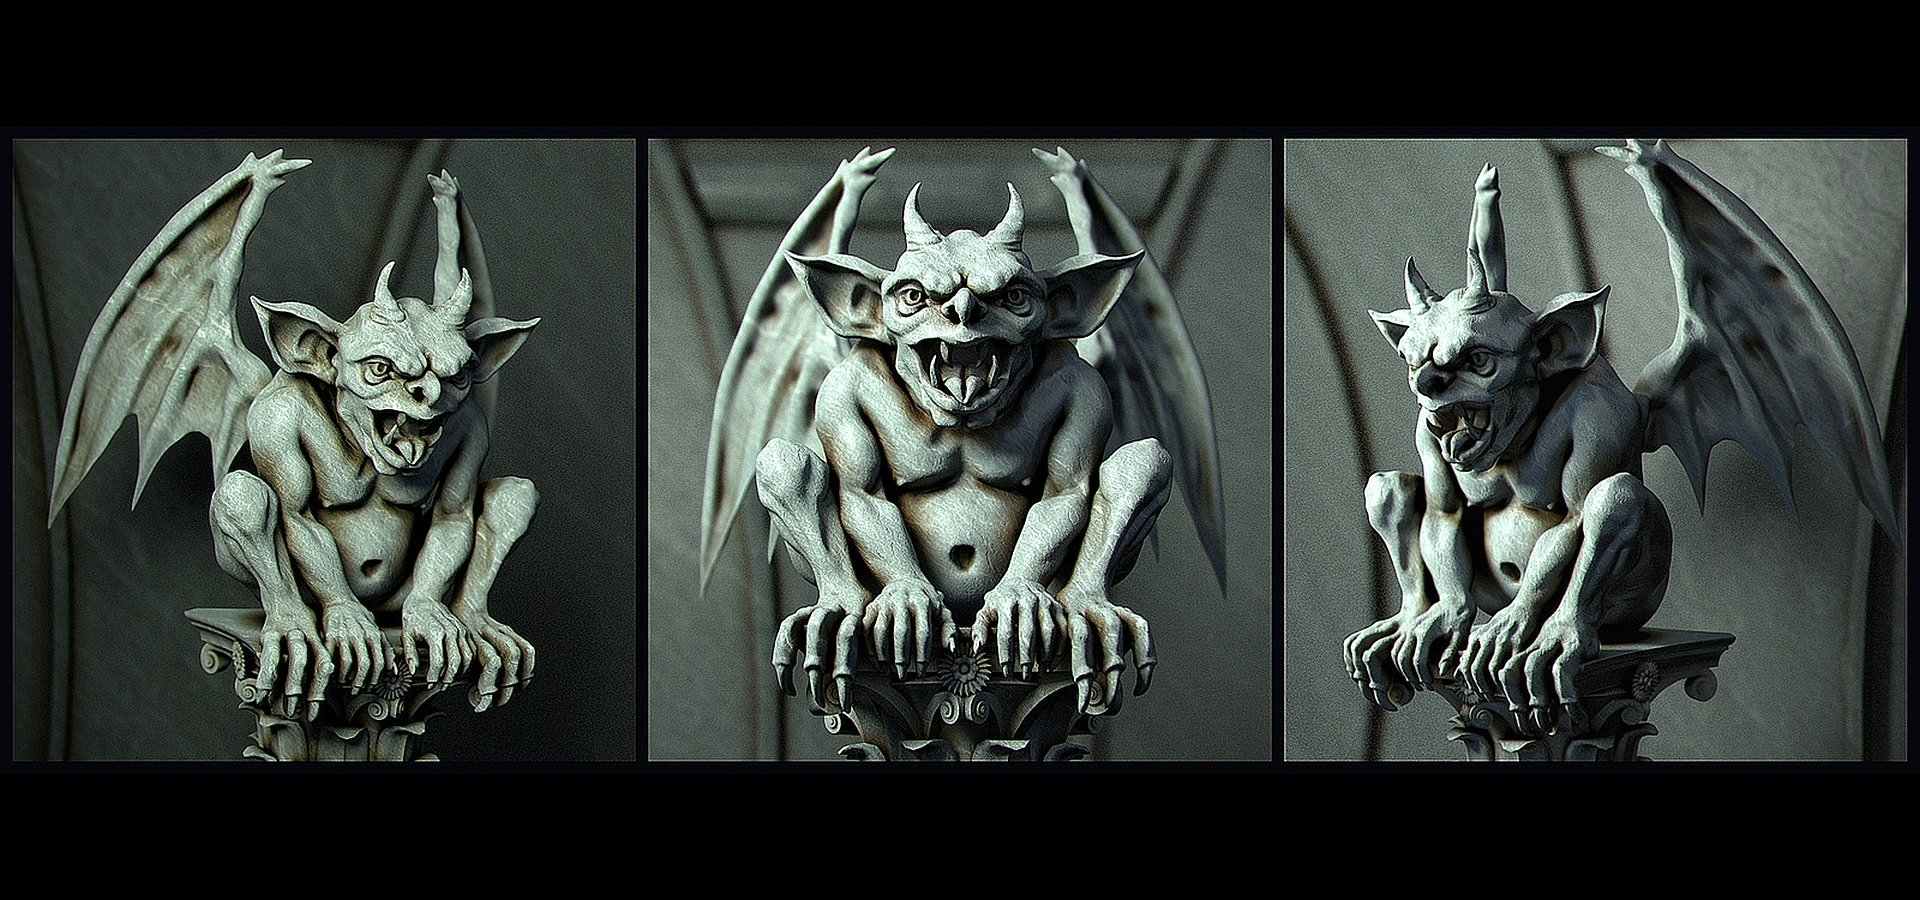 Gargoyle Wallpaper And Background 1920x900 Id 328764 HD Wallpapers Download Free Images Wallpaper [1000image.com]